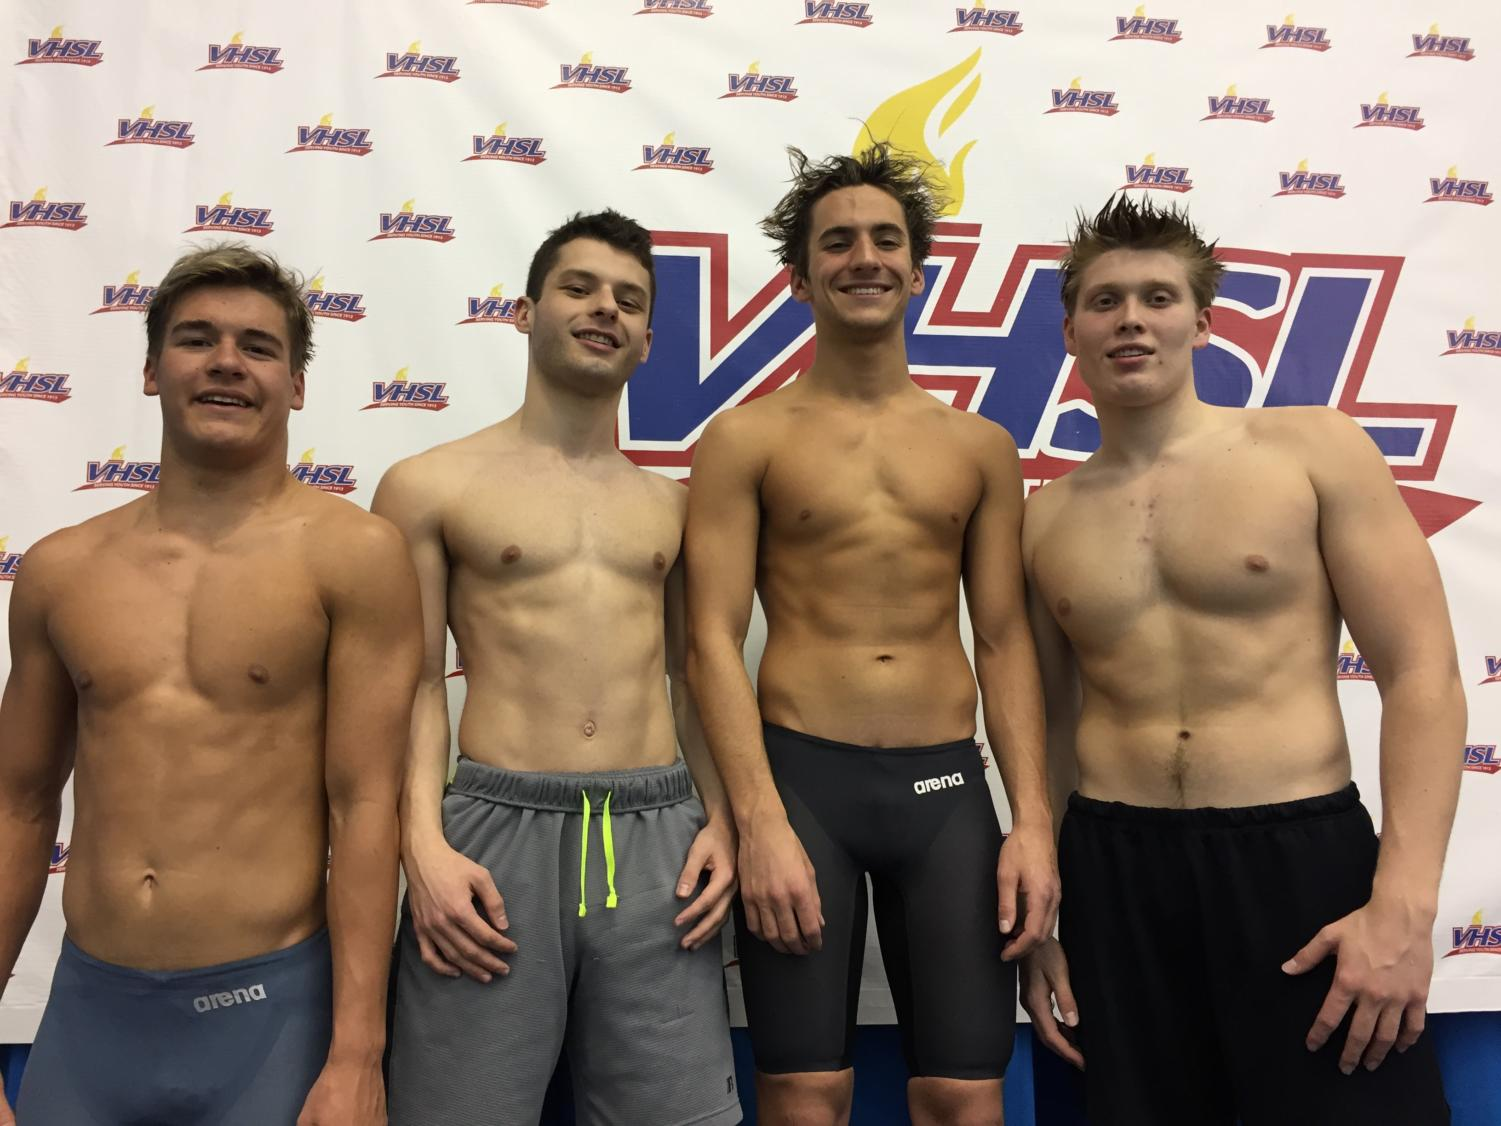 Congratulations to Alexi Gentz, Sam Garbera, Casey Branin, and Sam McKey on placing first in the 400 yd relay with a time of 3:29.91,